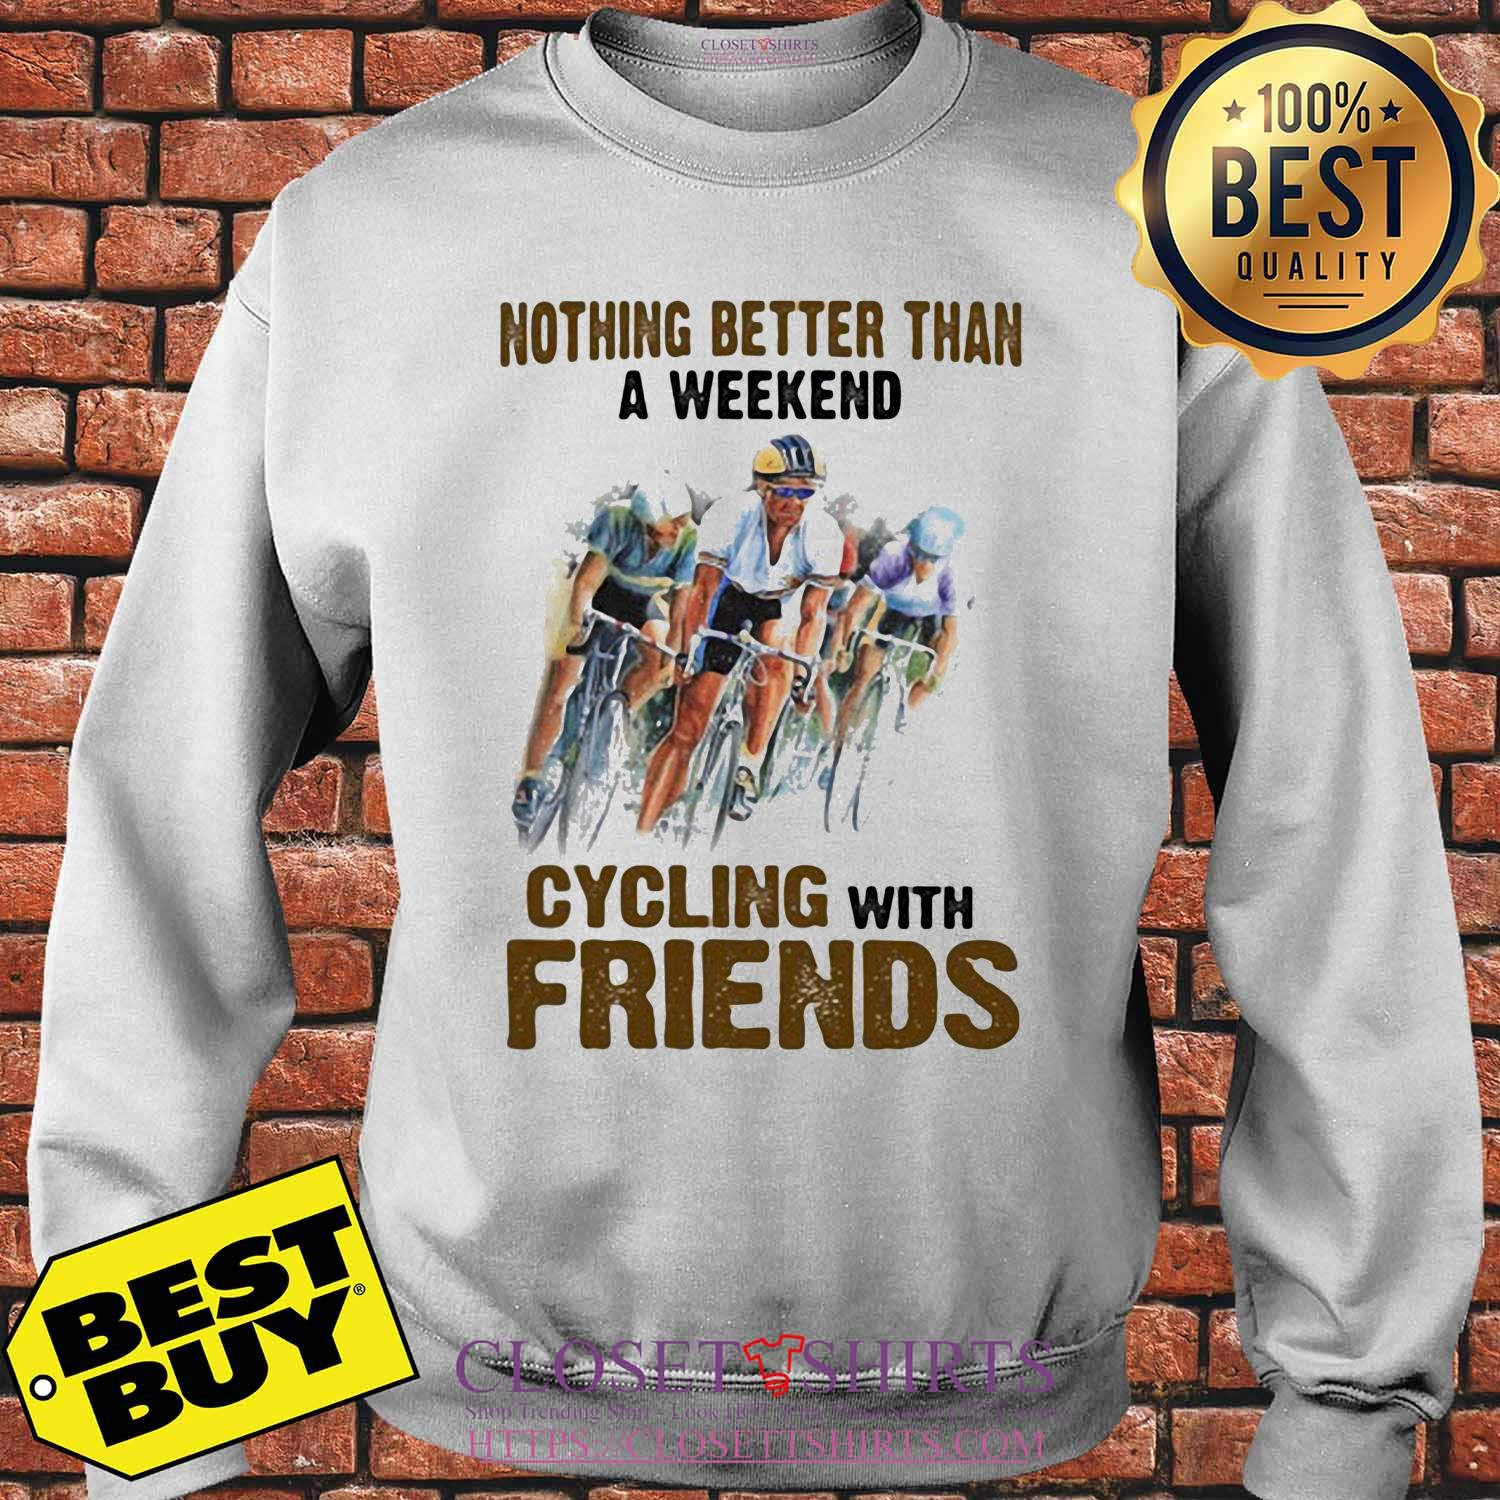 Nothing Better than a weekend cycling with friends shirt